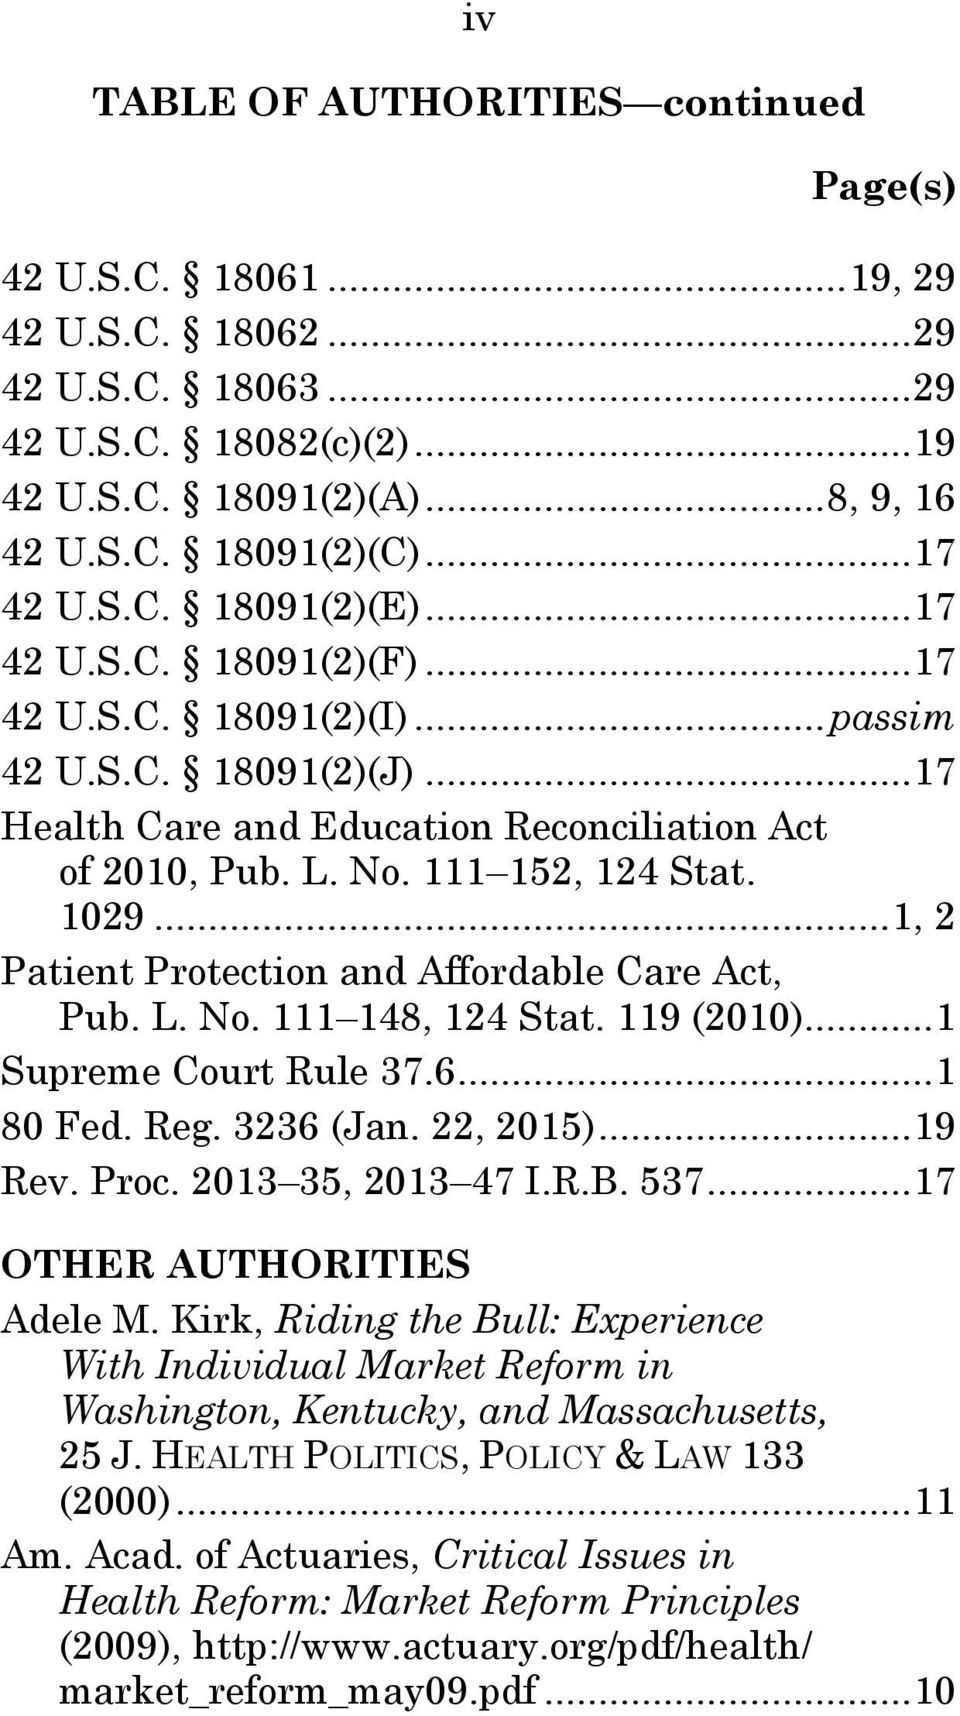 ..1, 2 Patient Protection and Affordable Care Act, Pub. L. No. 111 148, 124 Stat. 119 (2010)...1 Supreme Court Rule 37.6...1 80 Fed. Reg. 3236 (Jan. 22, 2015)...19 Rev. Proc. 2013 35, 2013 47 I.R.B.